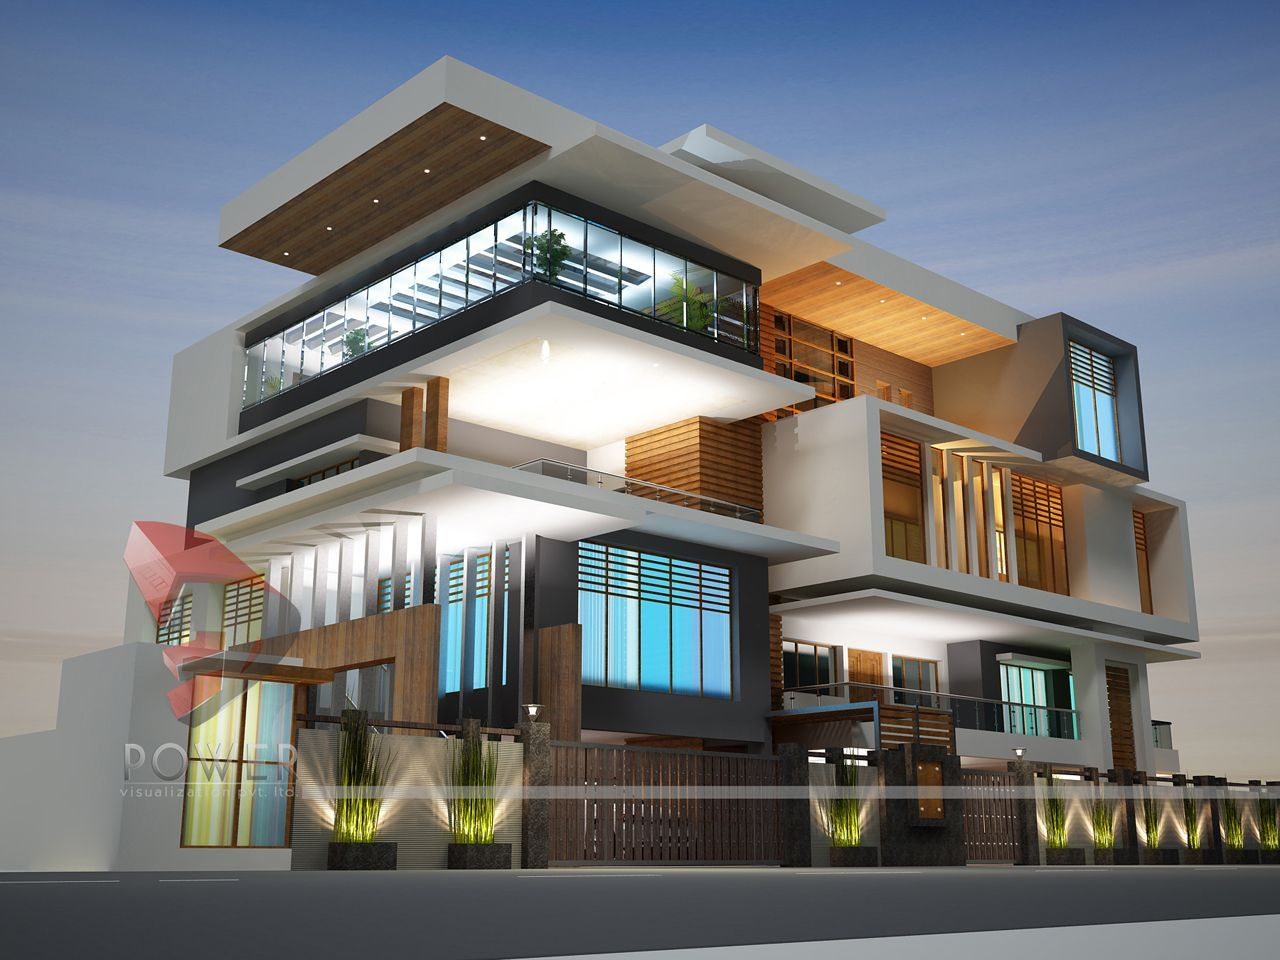 Modern house design in india architecture india modern for Modern building architecture design